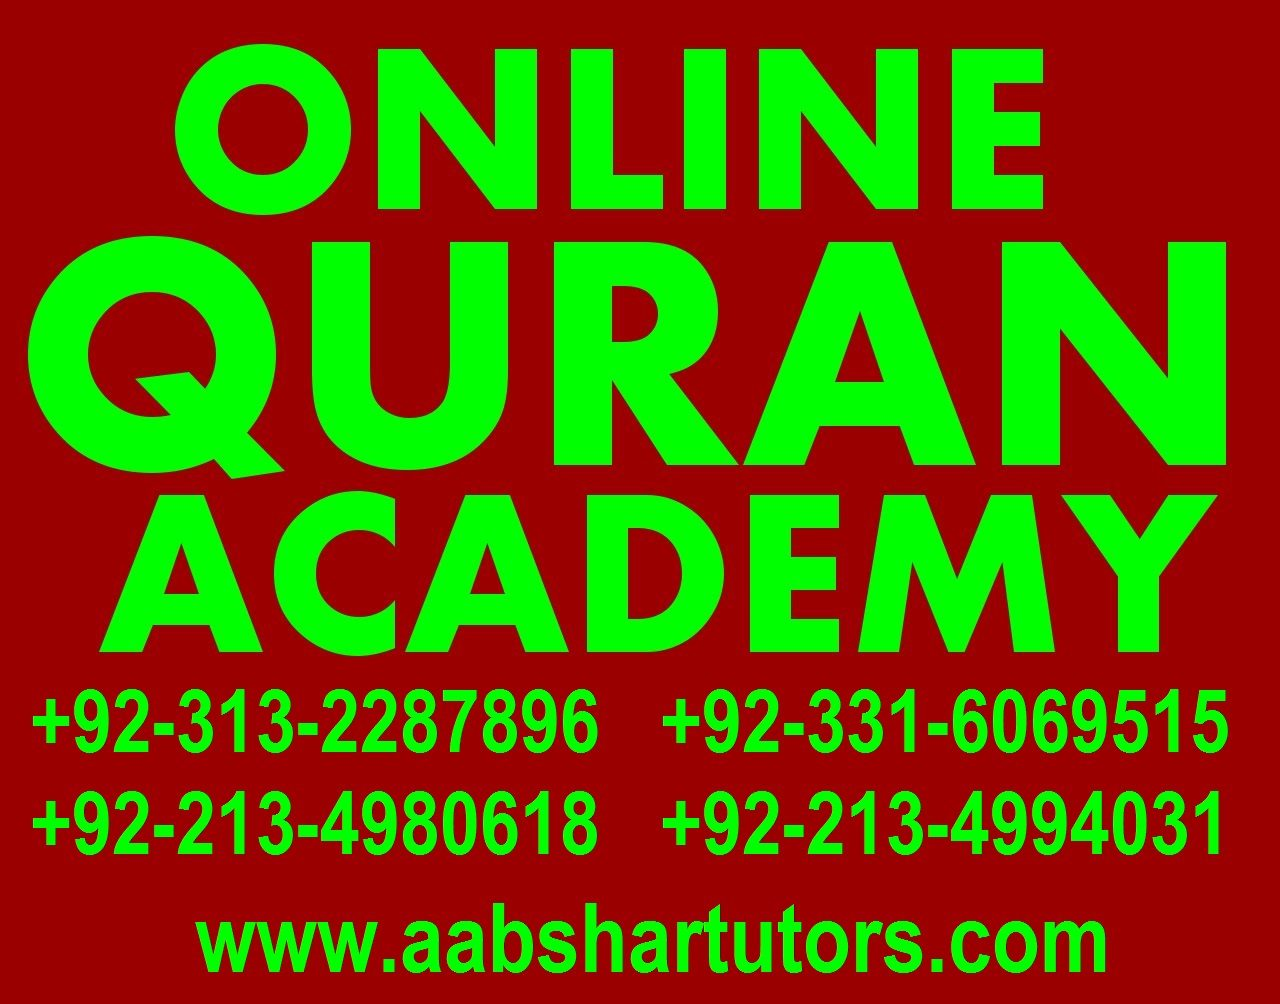 Quran Tutor Karachi +92-313-2287896 Quran Teacher Academy For Private Tuition and Online Tutoring +92-313-2287896 Online Quran Tutor | Quran Home Teacher in Karachi | Female Quran Tutor in Lahore | Online Lady Quran Tutor in Multan | Online Quran Teacher in Islamabad | Virtual Quran Tuition in Peshawar and Quetta | Female Quran Teacher in Pakistan | Online Quran Tutors and Teachers in Pakistan | Learn Quran Online in Pakistan | Lady Tutor for Quran Tutoring | Virtual Quran Tutor | Quran Home Tuition in Lahore | Study Quran Online | Pakistani Quran Teachers and Tutors | Learn Quran with Tajweed | Quran Nazra and Hifz Online and Home Tutoring | Arabic Language Tutor in Karachi | Quran Nazra Tutor in Lahore | Quran Hifz Teacher in Lahore | Hire Quran Home Teacher in Karachi | Qaari Sahab for Quran Tutoring